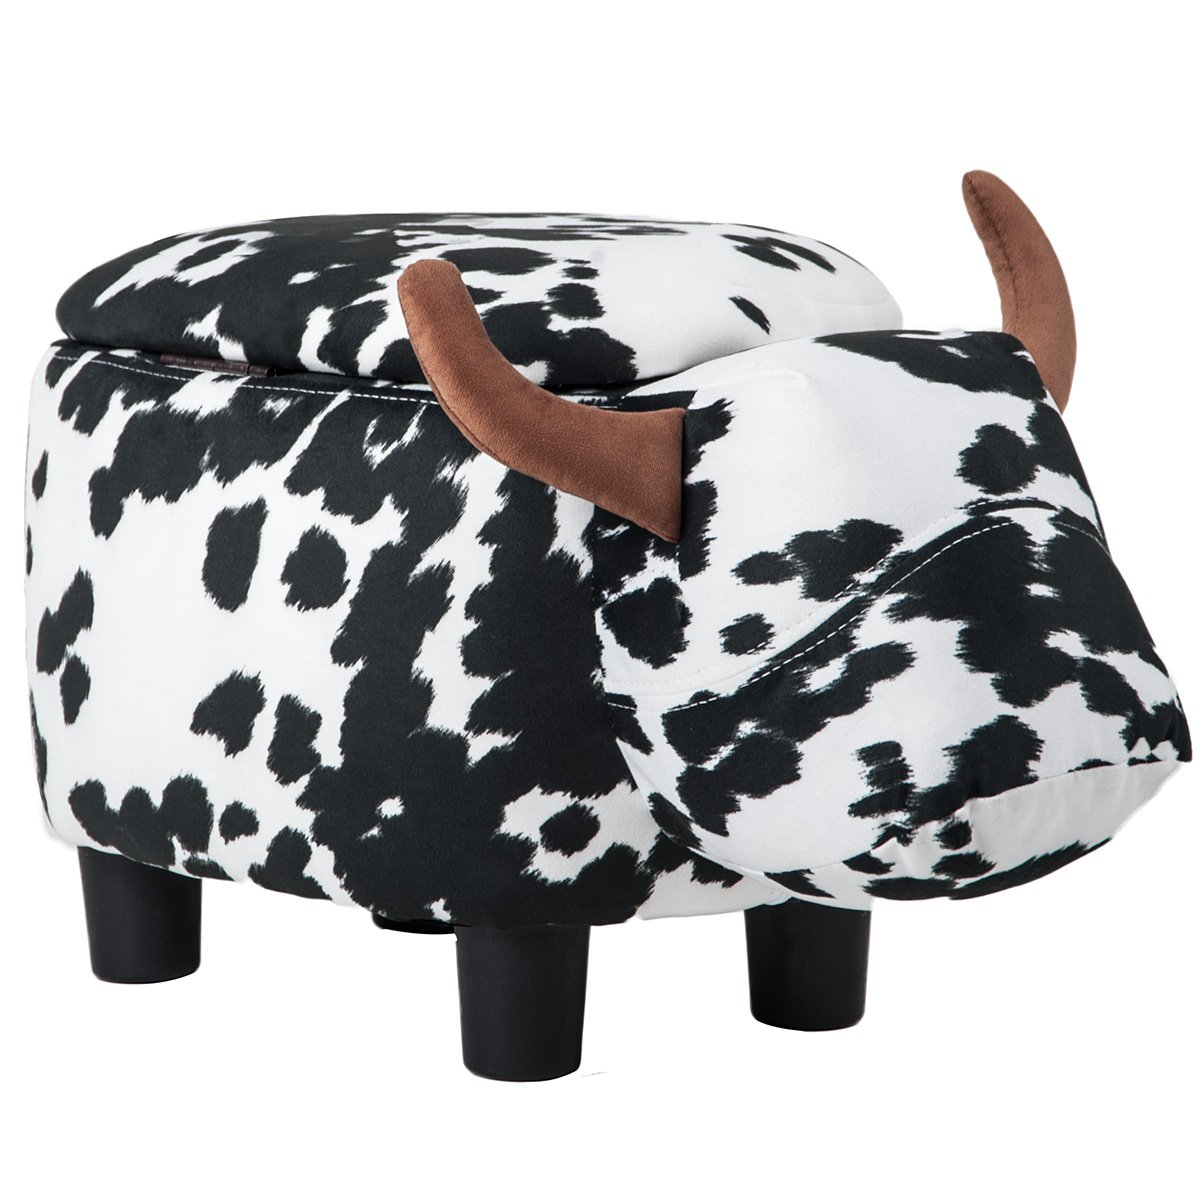 Merax Fun Series Upholstered Ride-on Storage Ottoman Footrest Stool with Vivid Adorable Animal-Like Features Black and White Cow